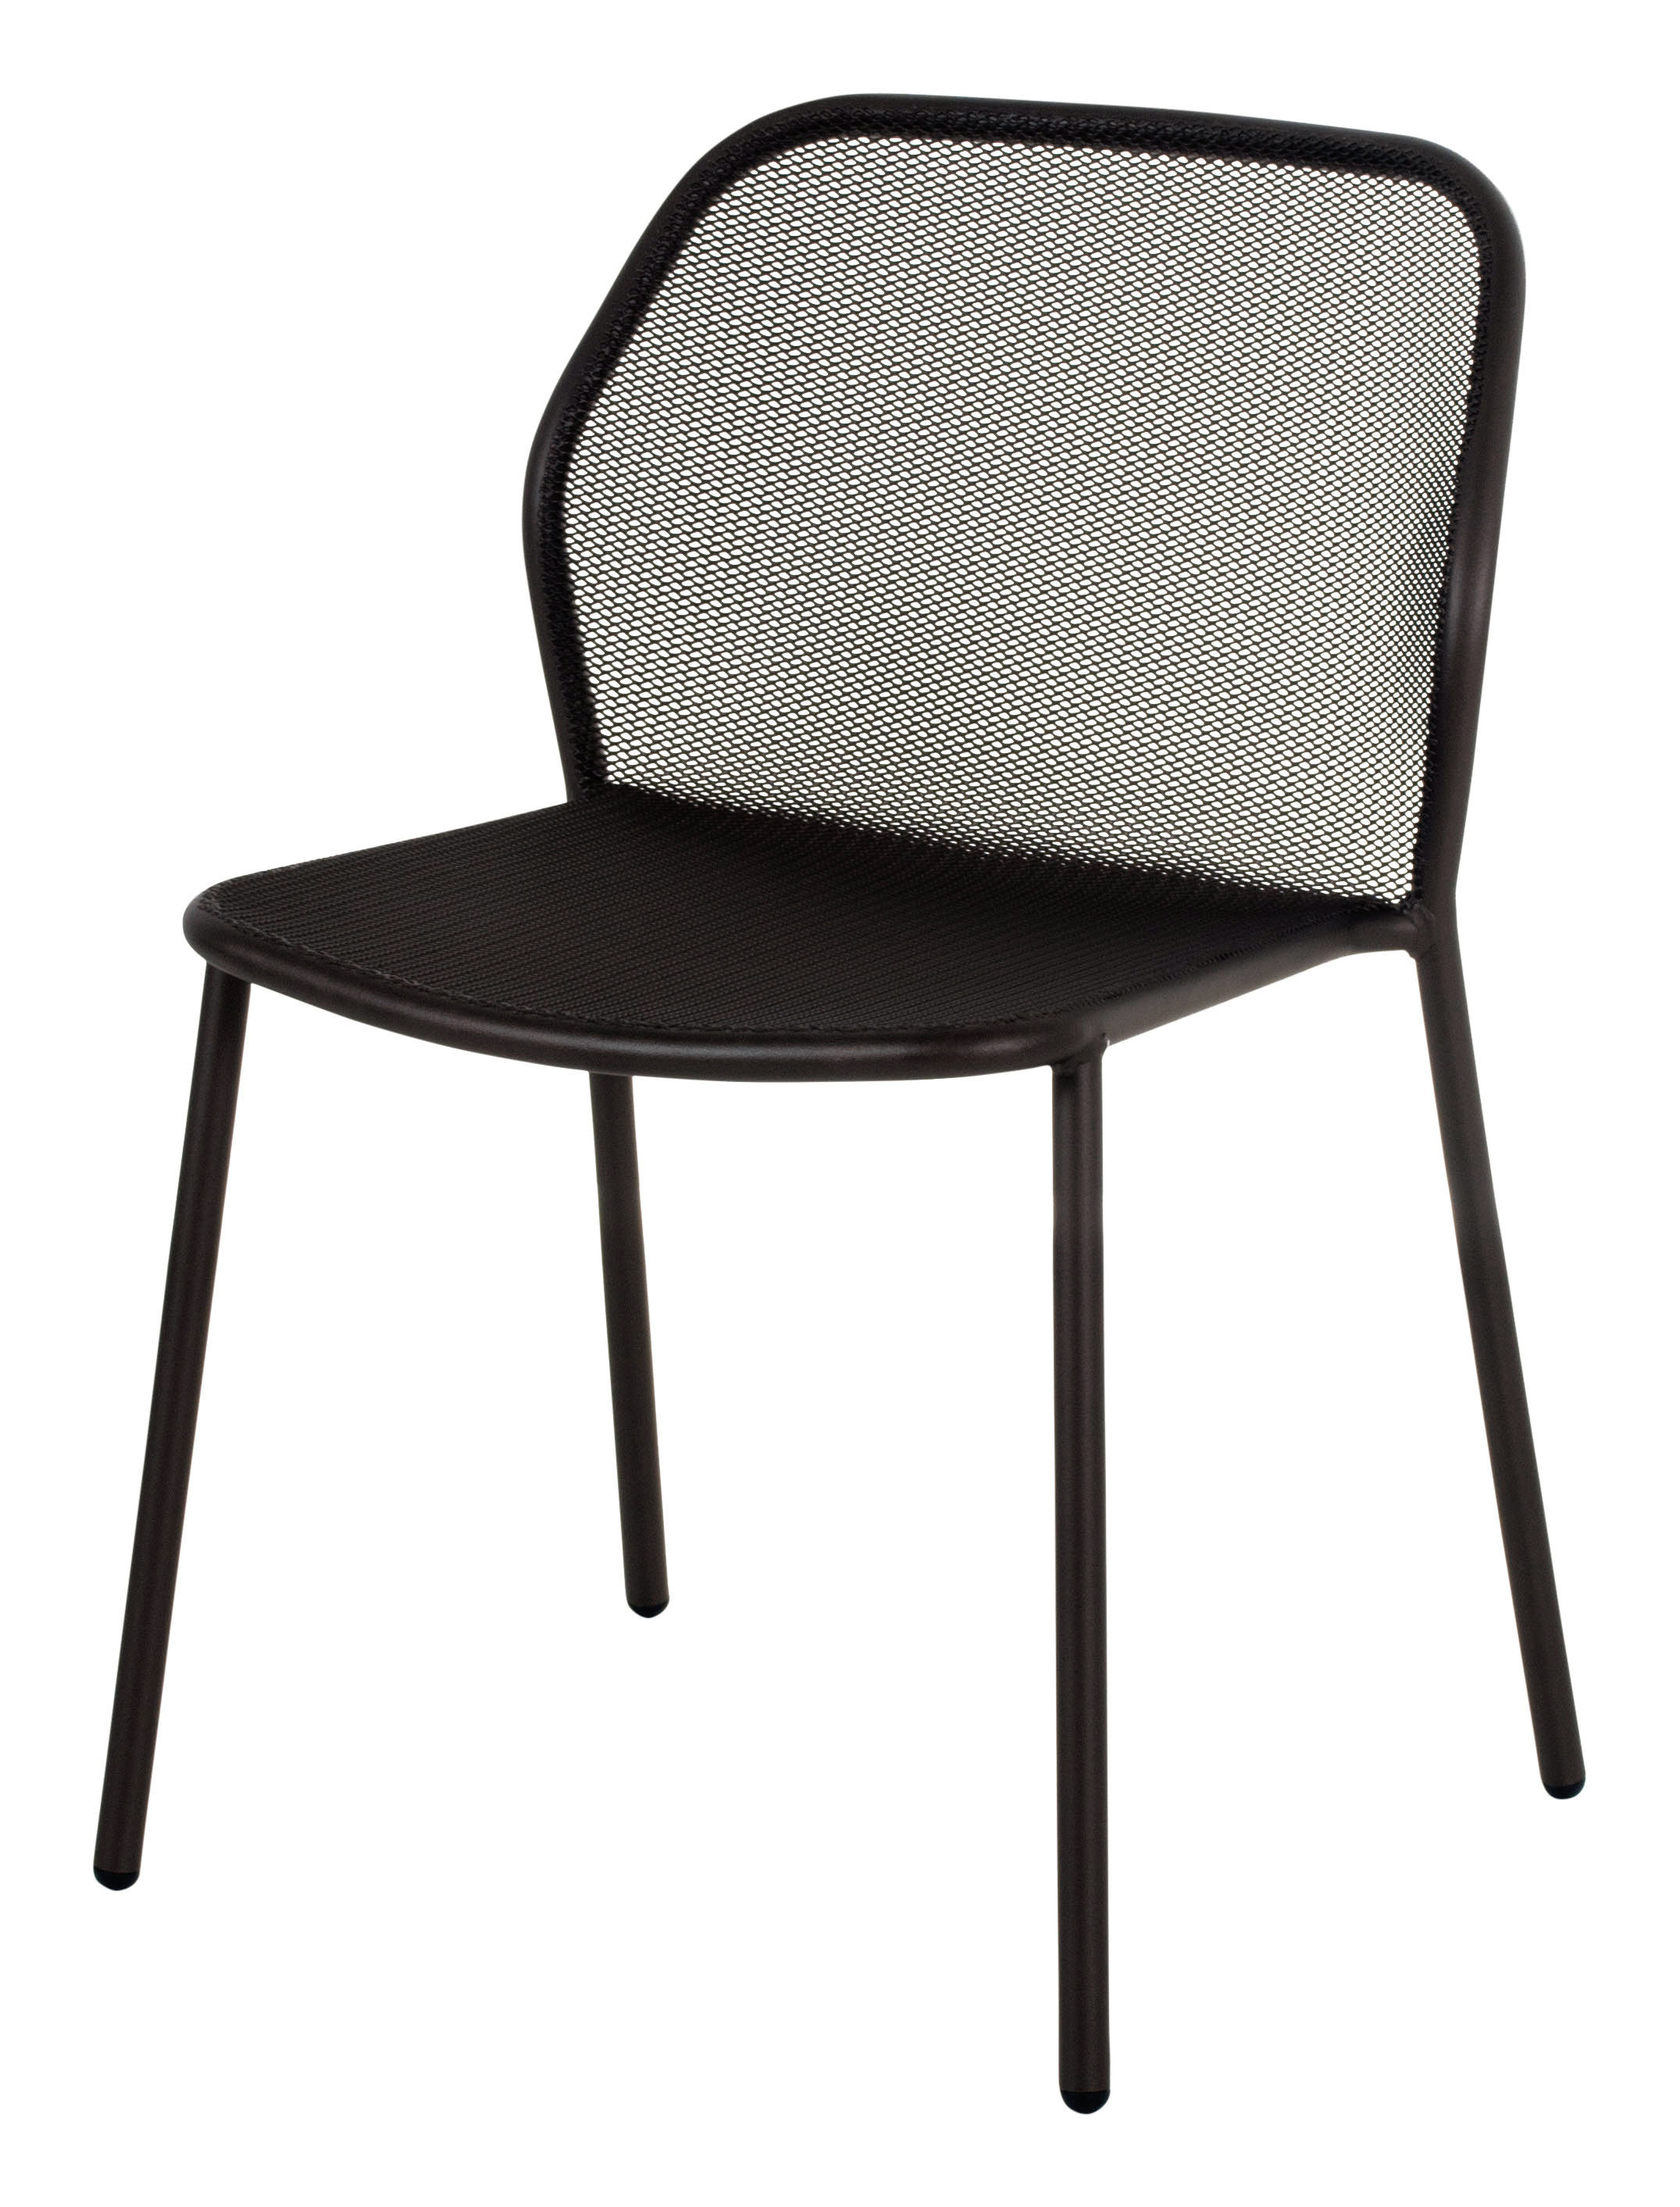 Darwin stackable chair metal black by emu for Outdoor furniture darwin